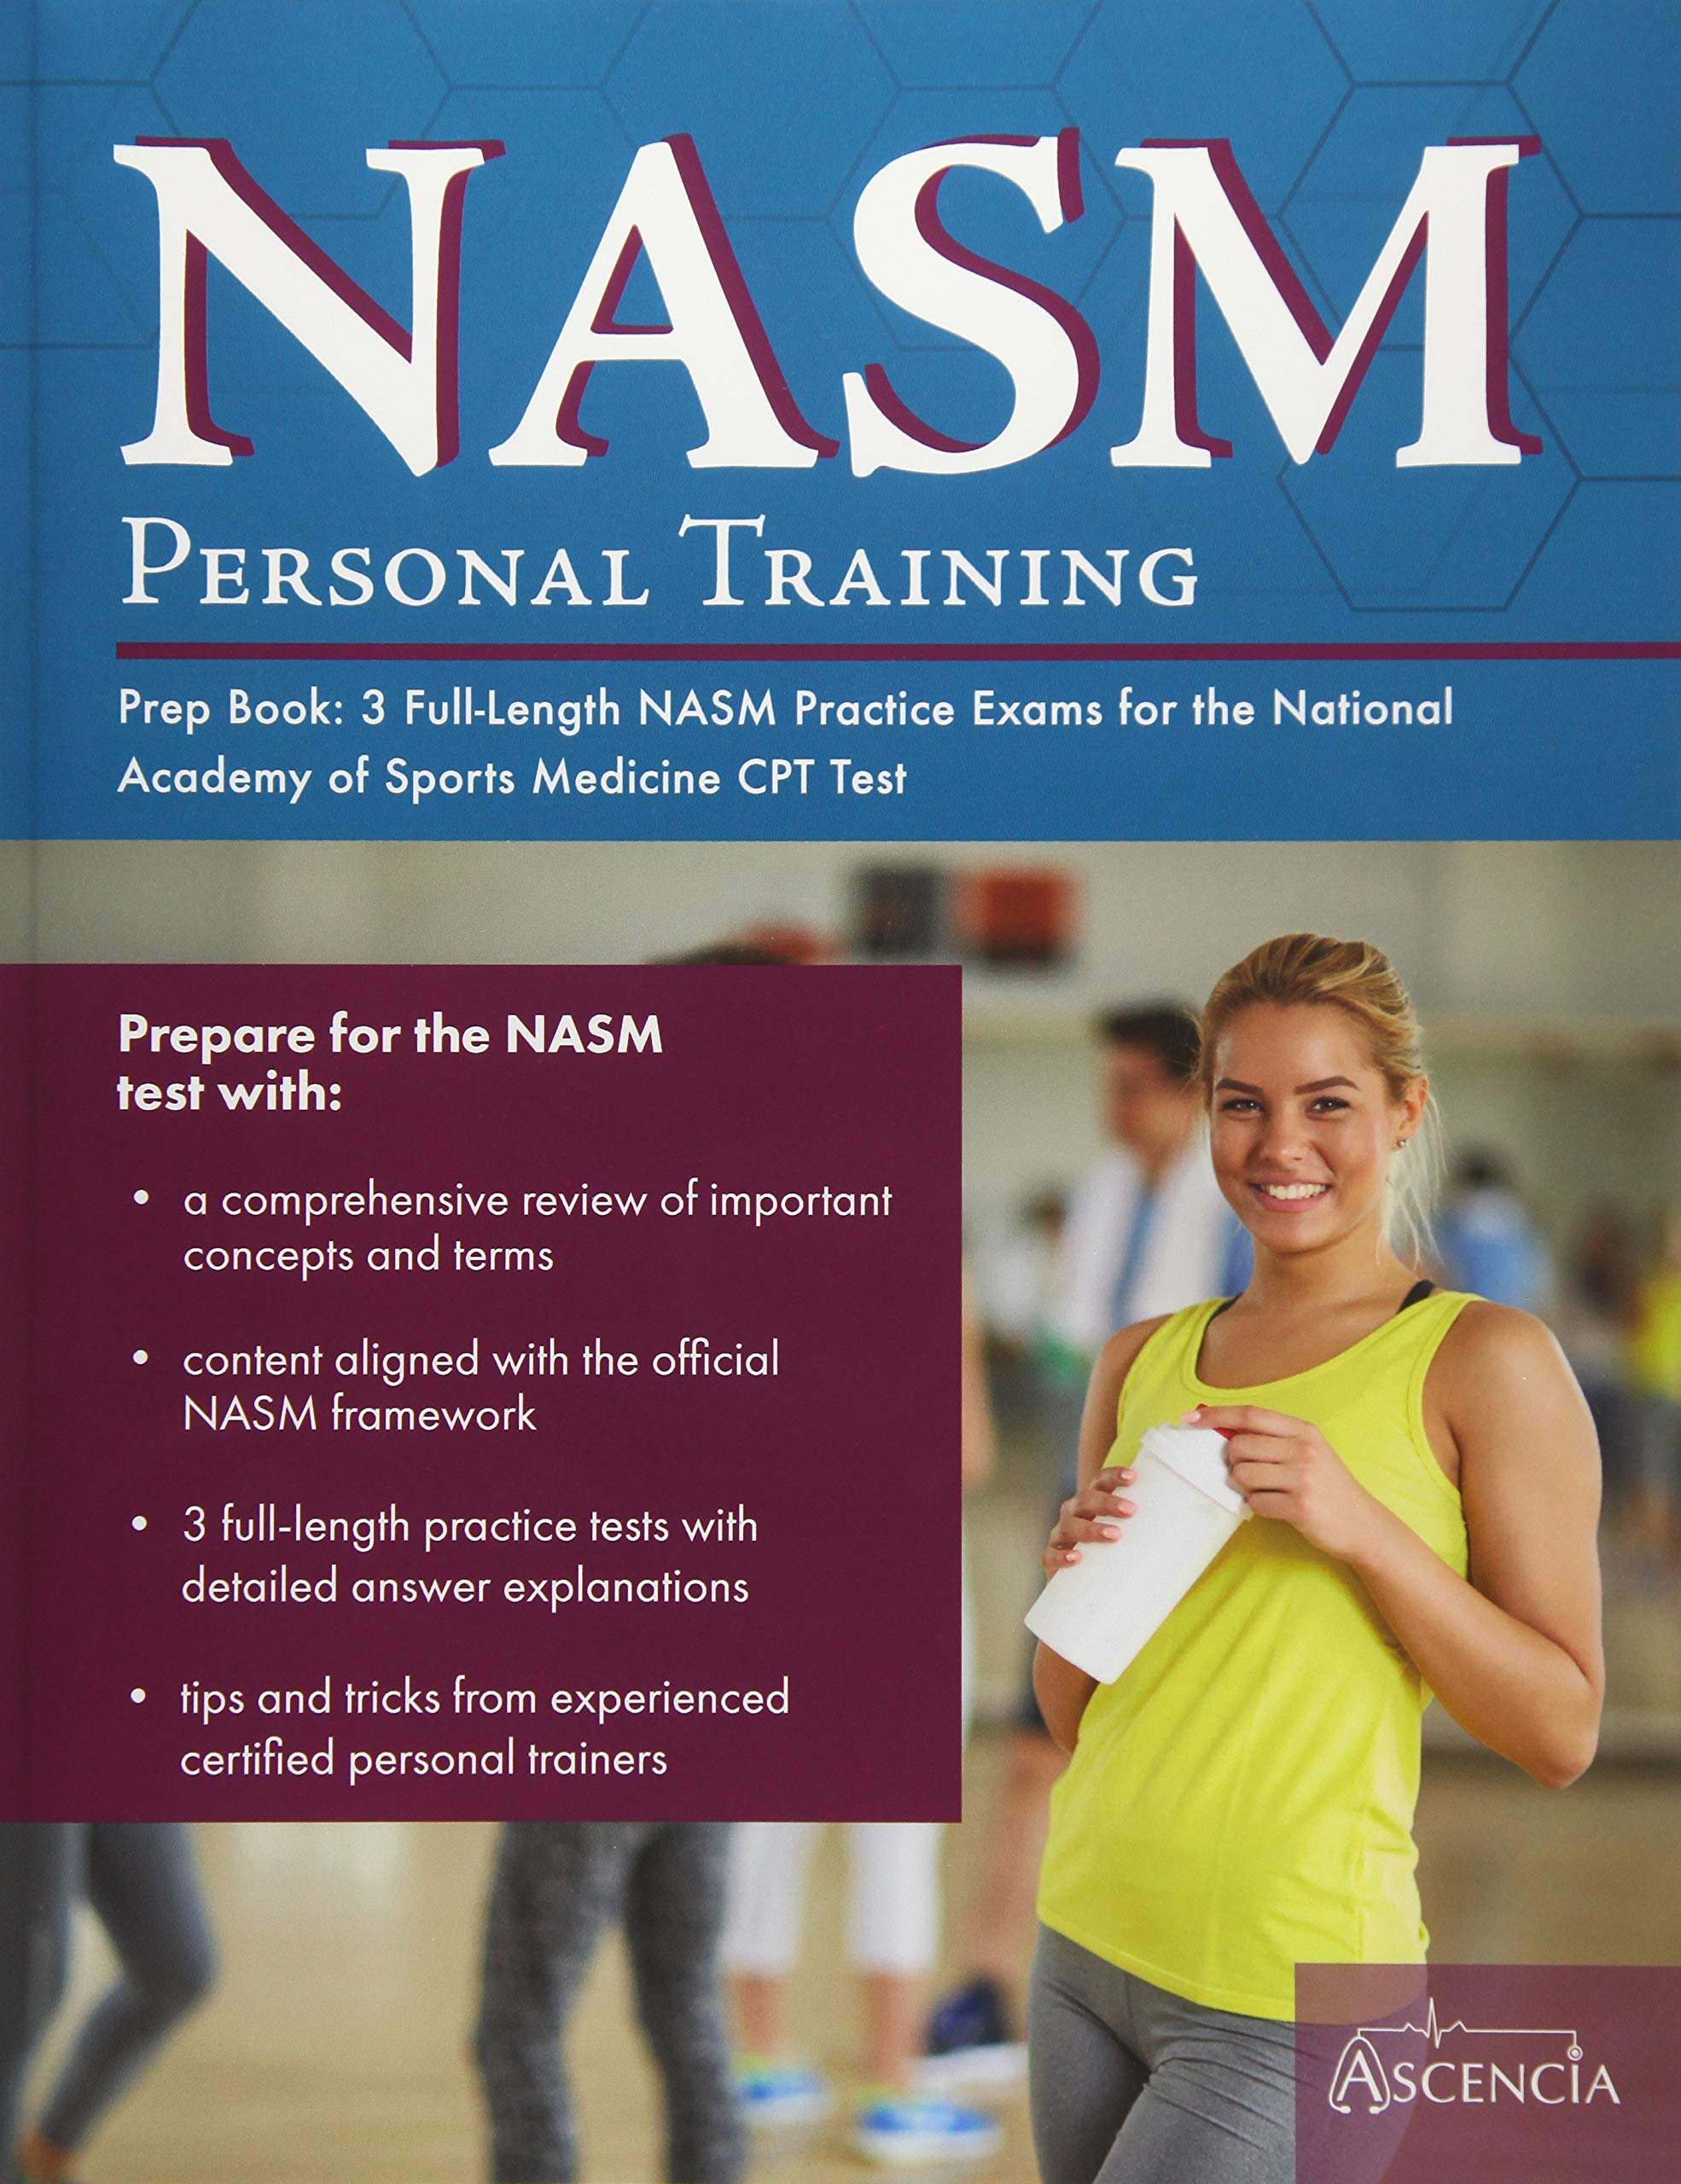 Nasm Personal Training Prep Book 3 Full Length Nasm Practice Exams